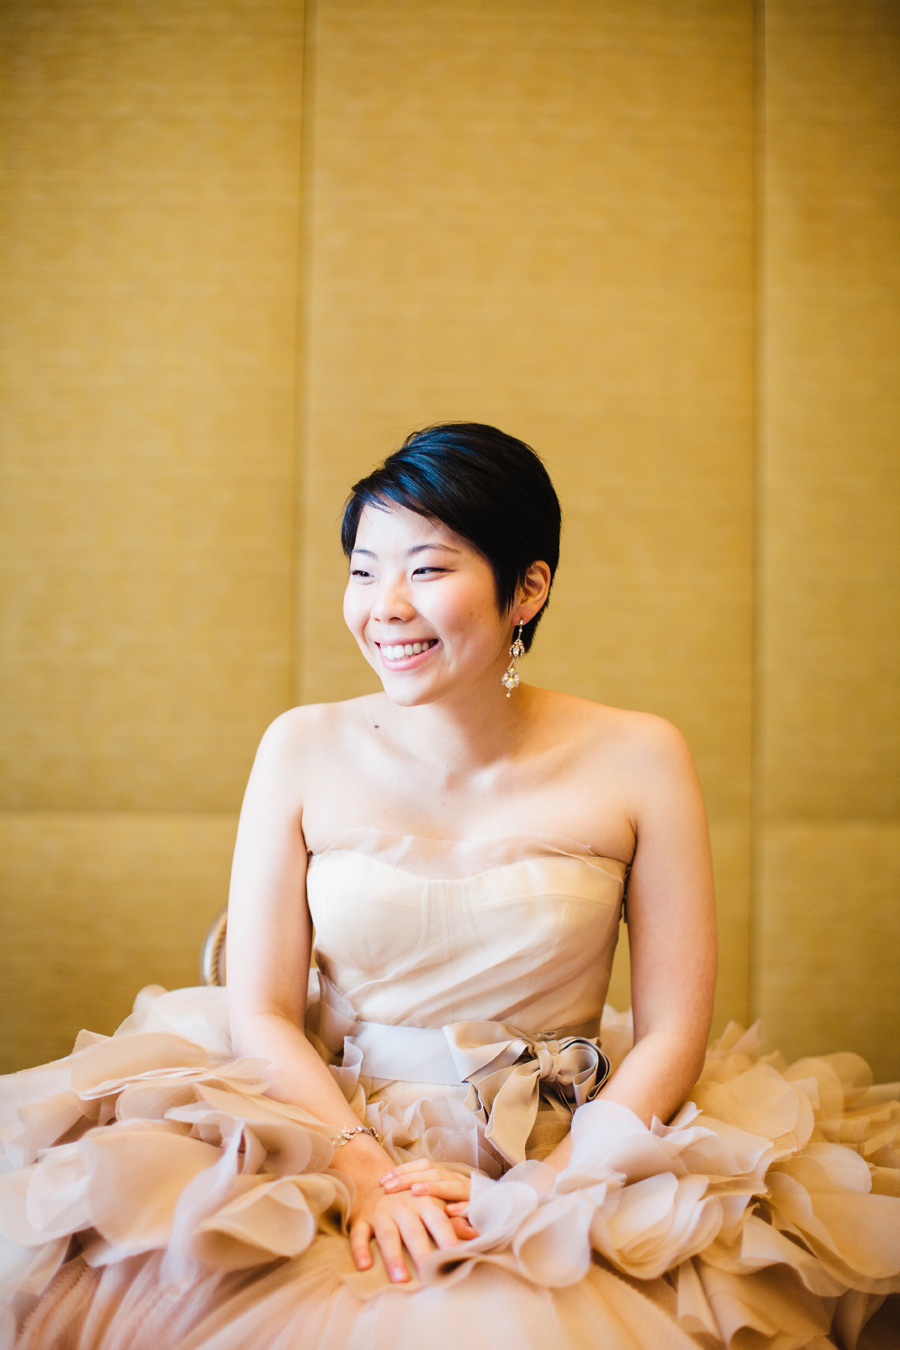 Hannah & Tj Beautiful Wedding at the Four Seasons Boston - Photography vera wang wedding dress